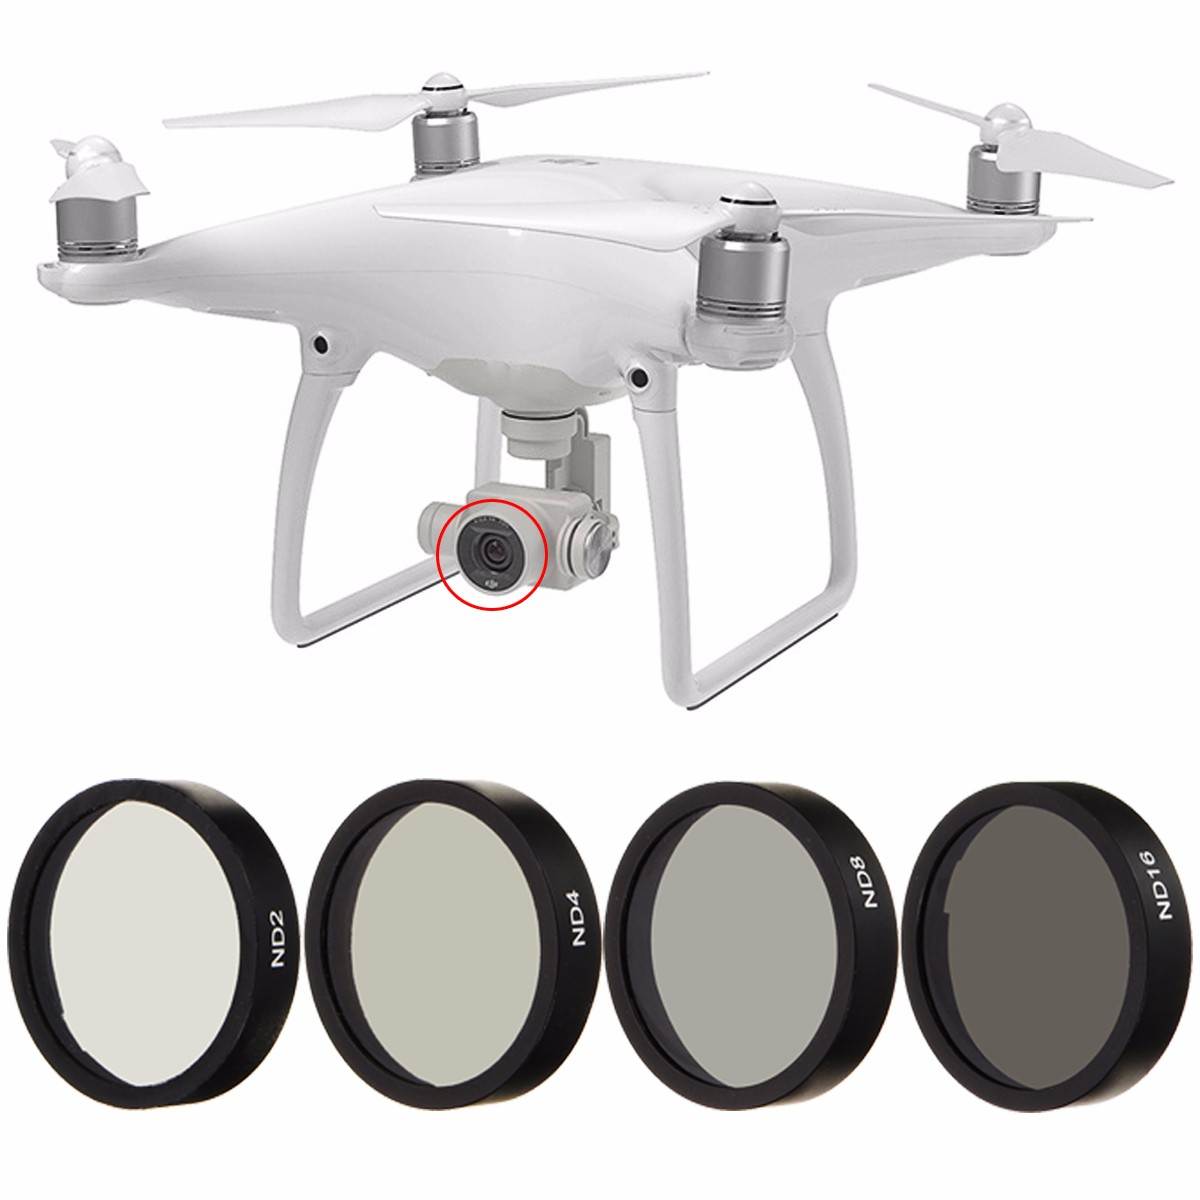 new-4pc-nd2-nd4-nd8-nd16-len-filter-for-font-b-dji-b-font-phantom-3-4-professional-advanced-camera-camera-font-b-drone-b-font-lens-set-black-frame